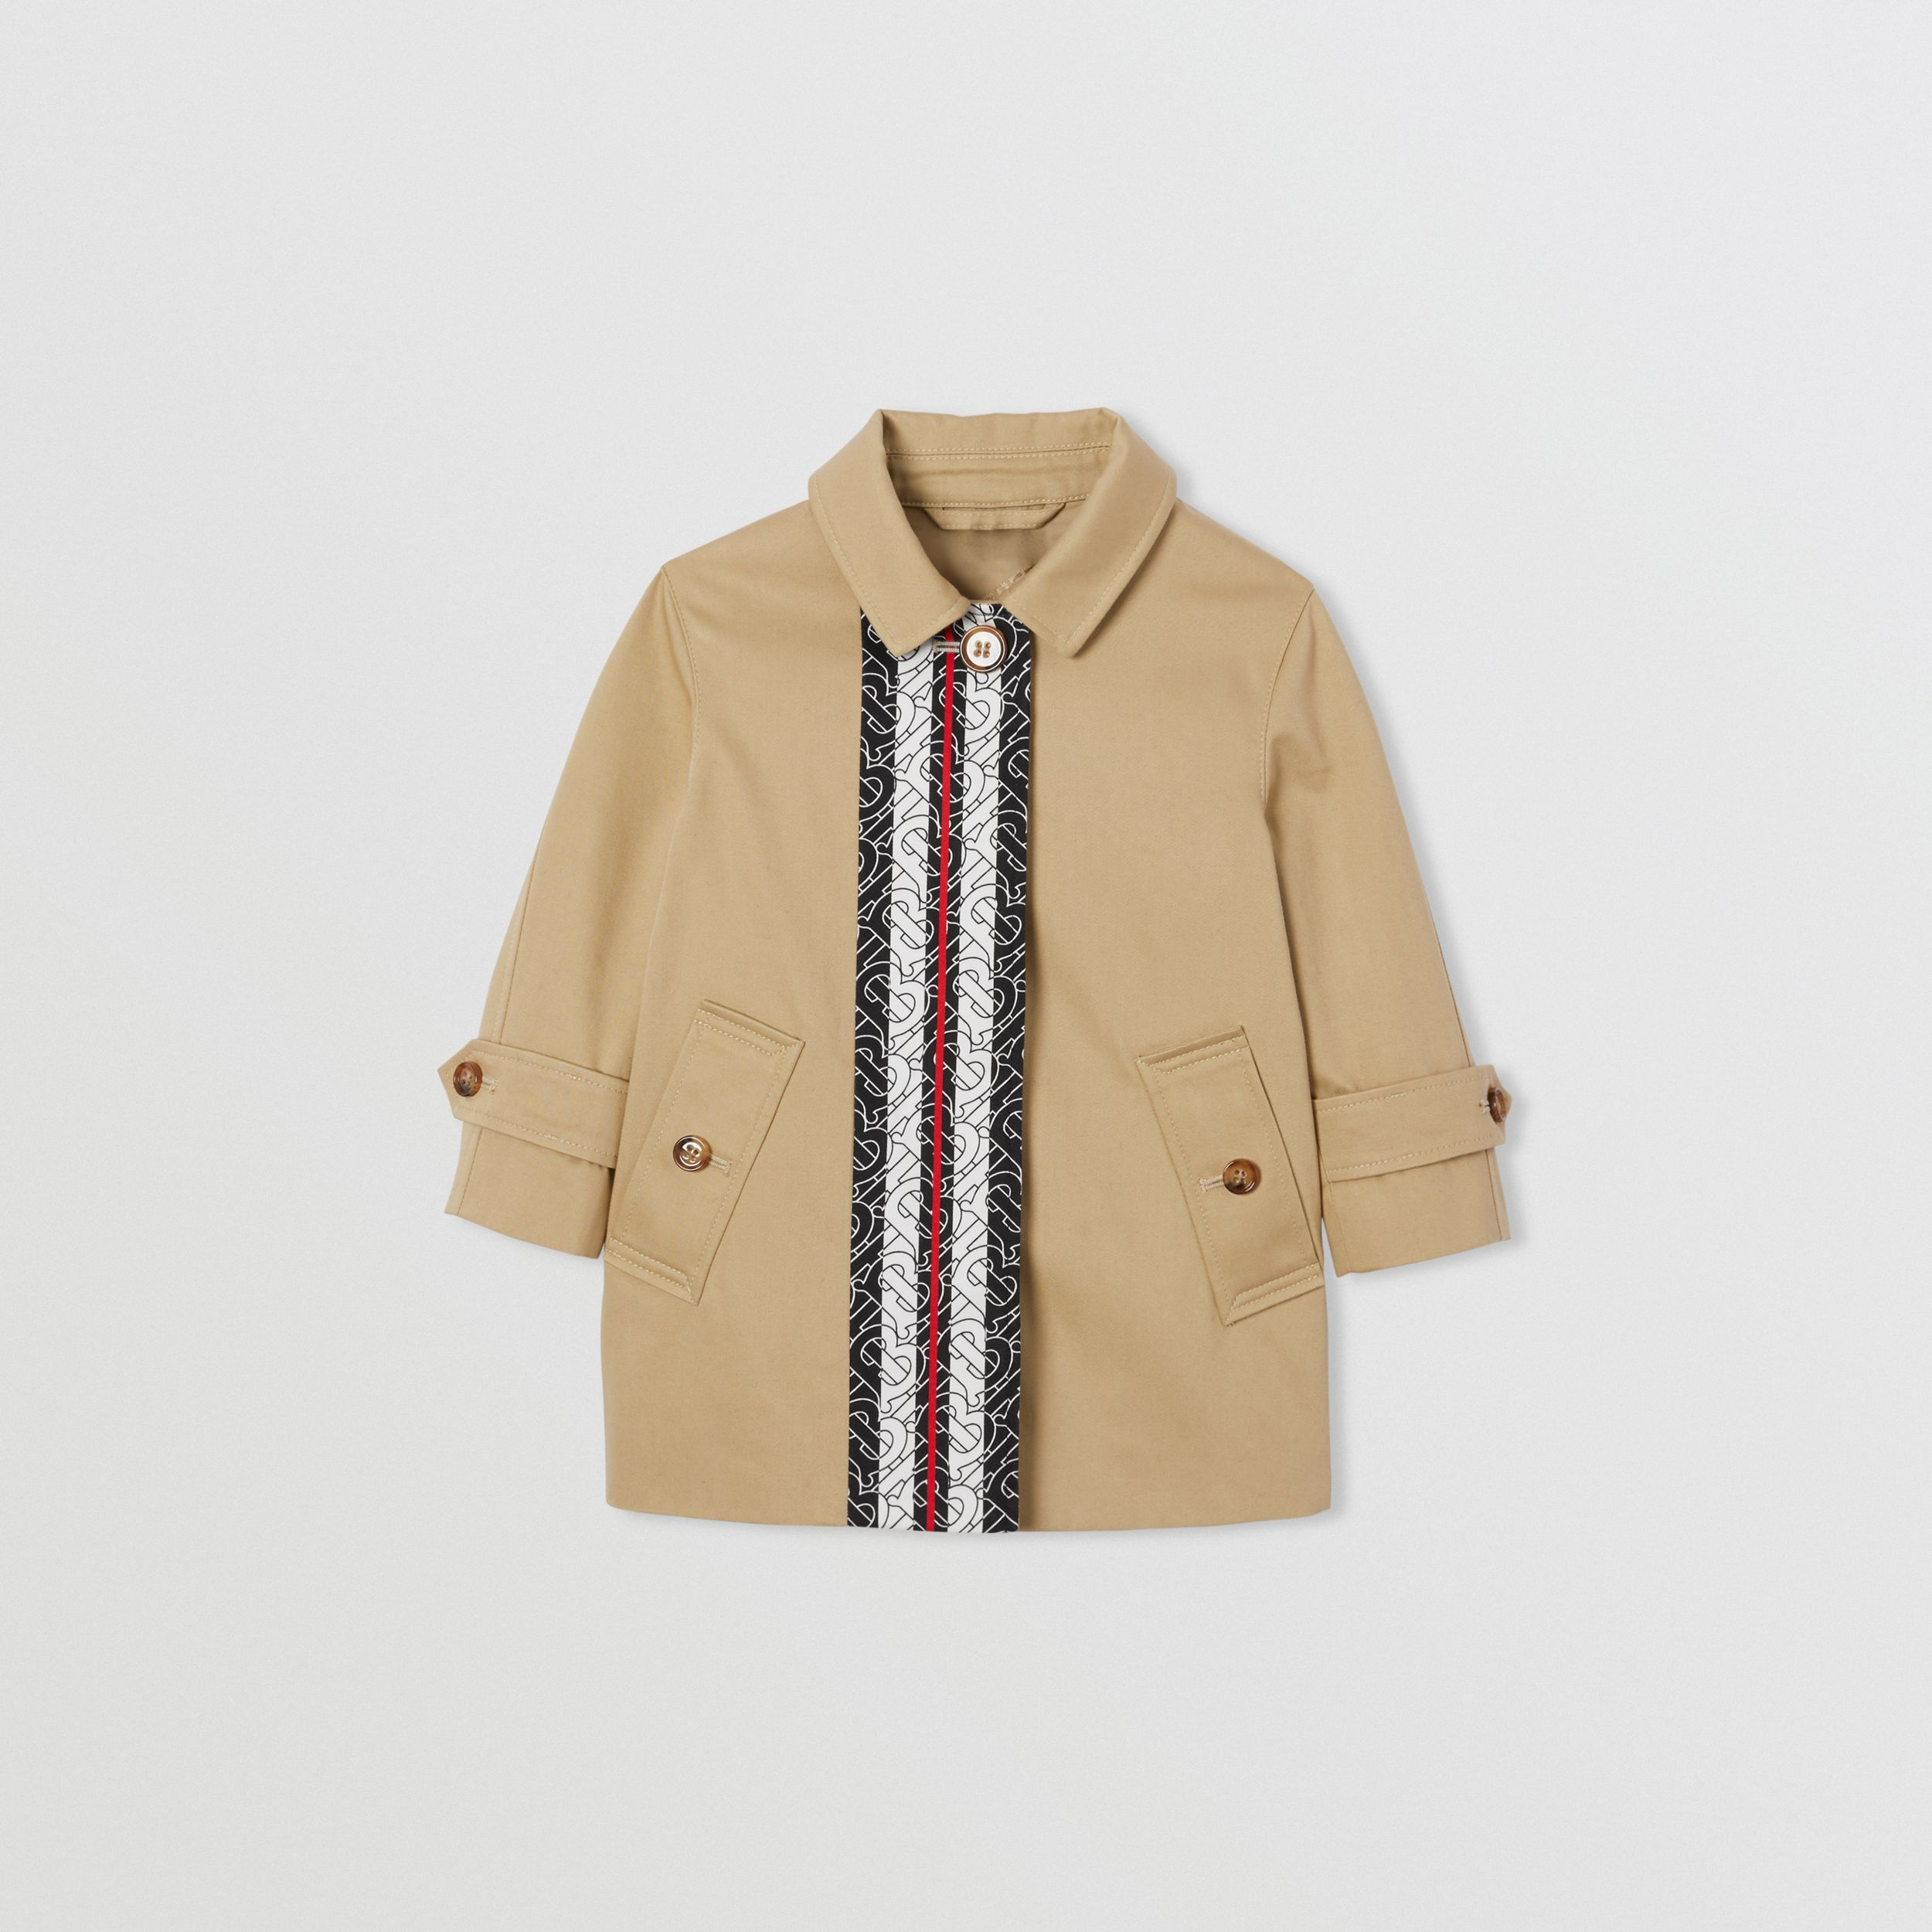 Monogram Stripe Print Cotton Car Coat in Honey - Children | Burberry - 1